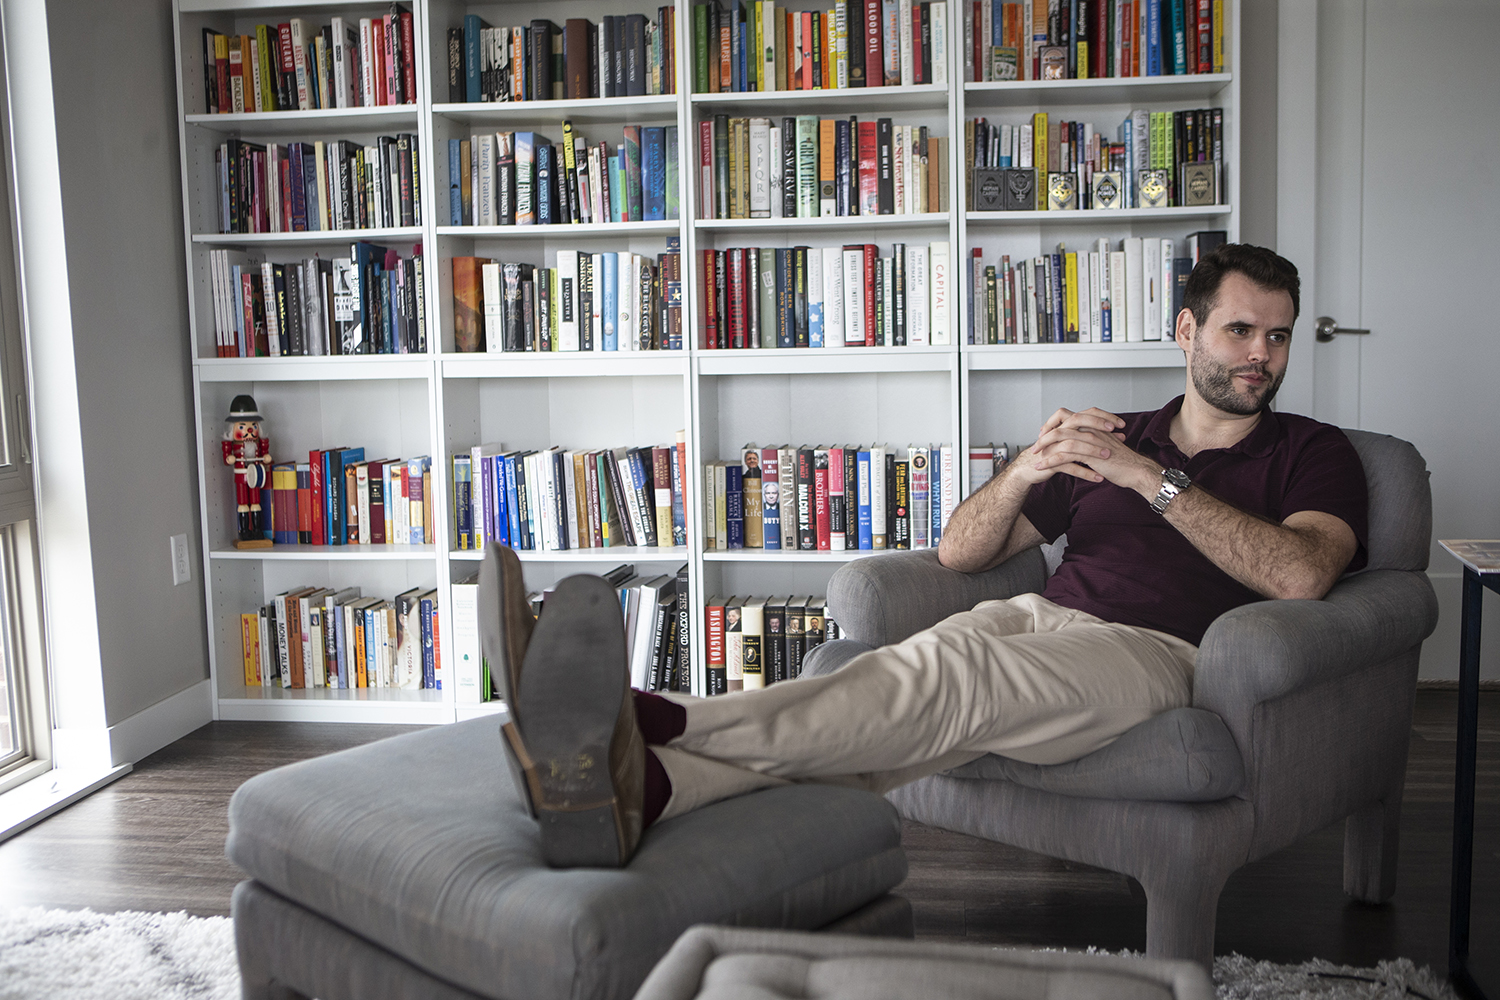 Senator Zach Wahls sits in his home in Coralville during an interview with The Daily Iowan on May 7,2019. (Katie Goodale/The Daily Iowan)